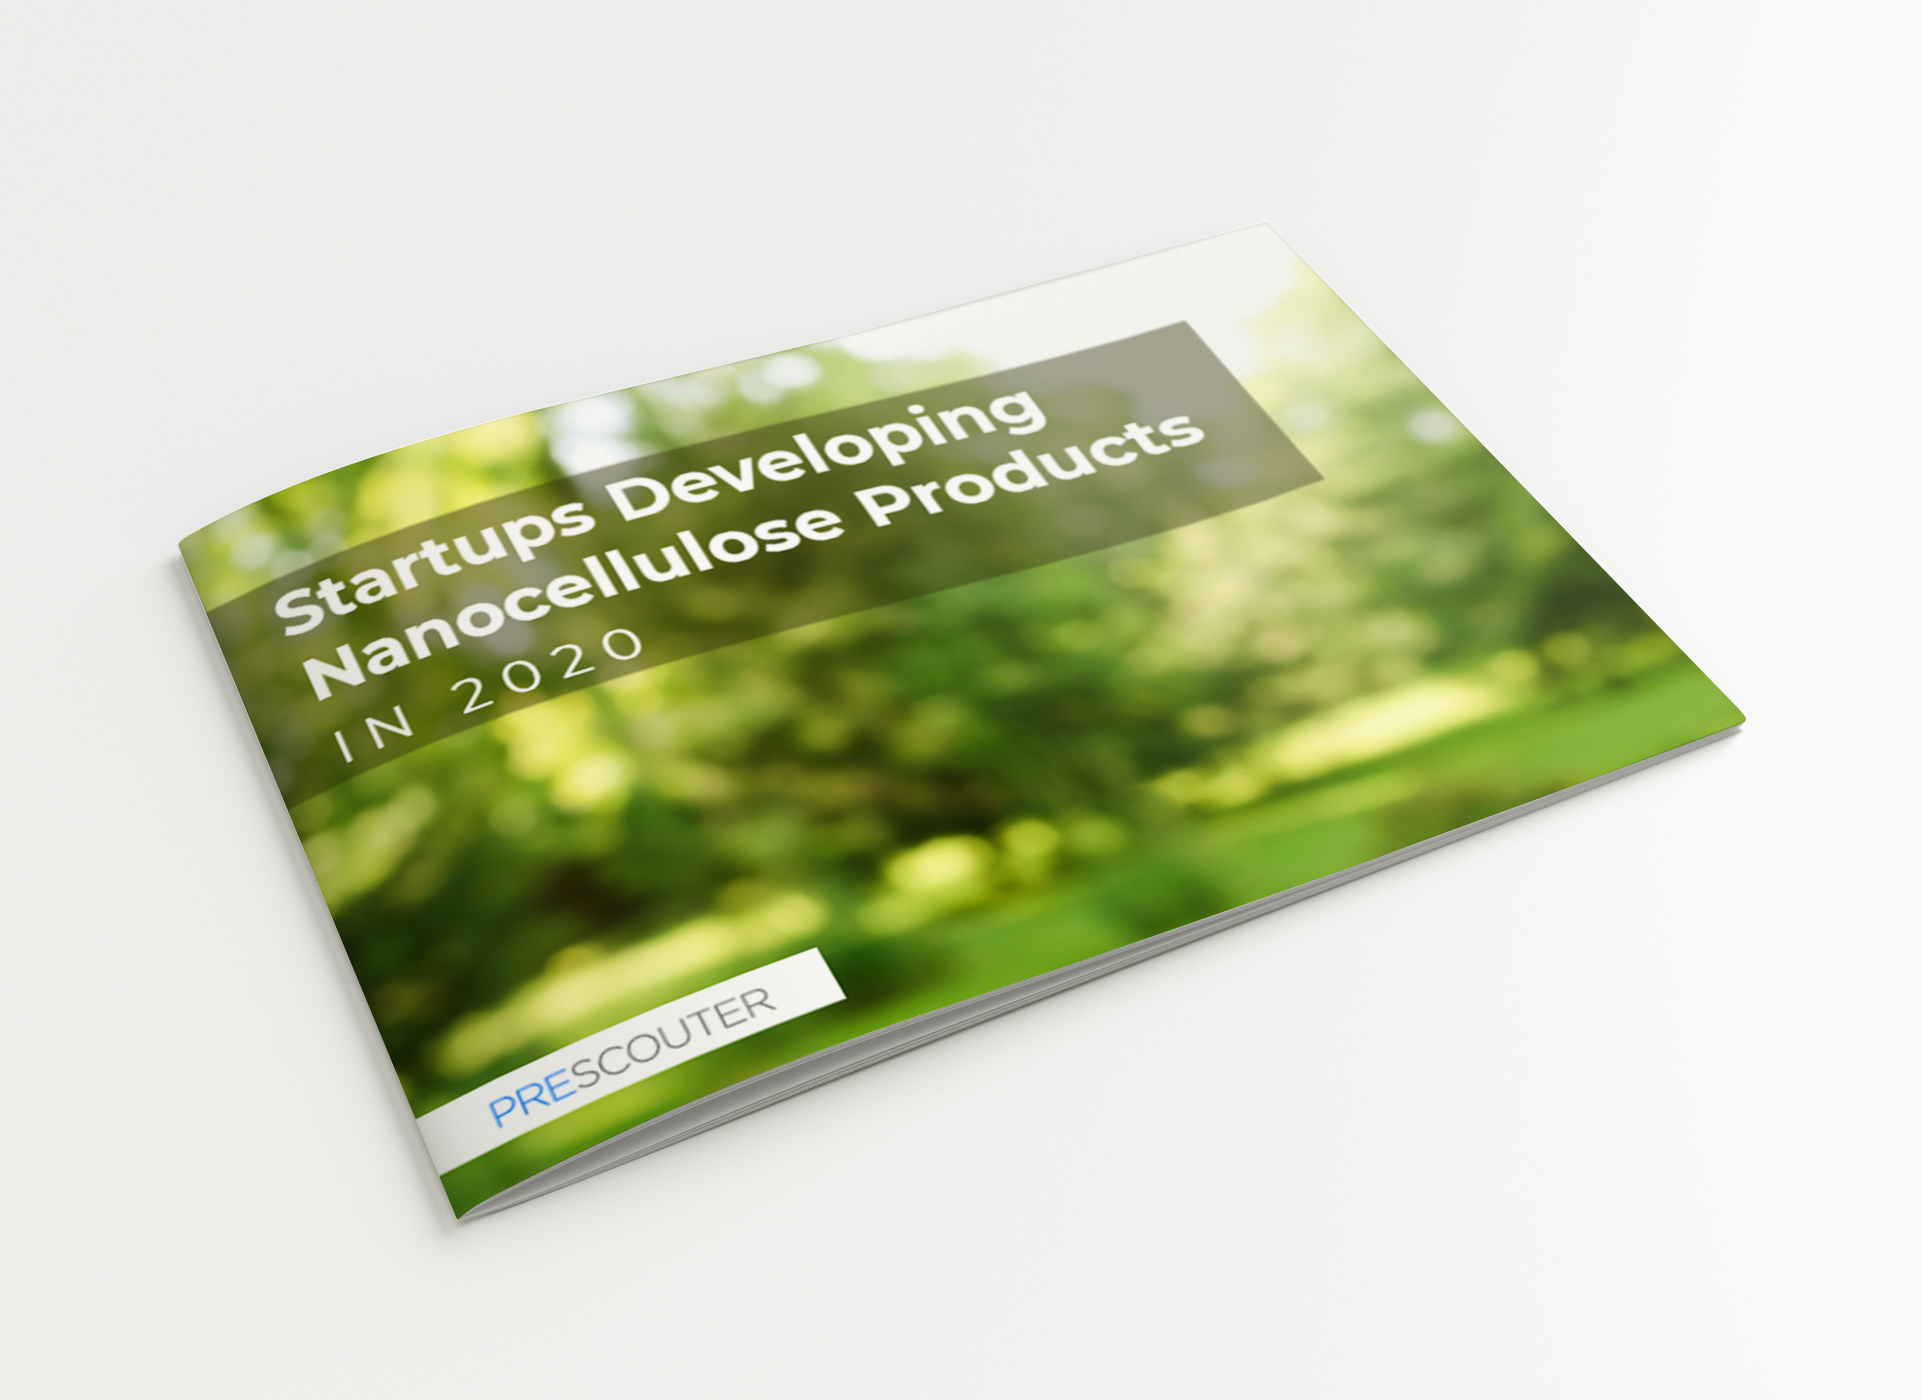 Startups Developing Nanocellulose Products in 2020